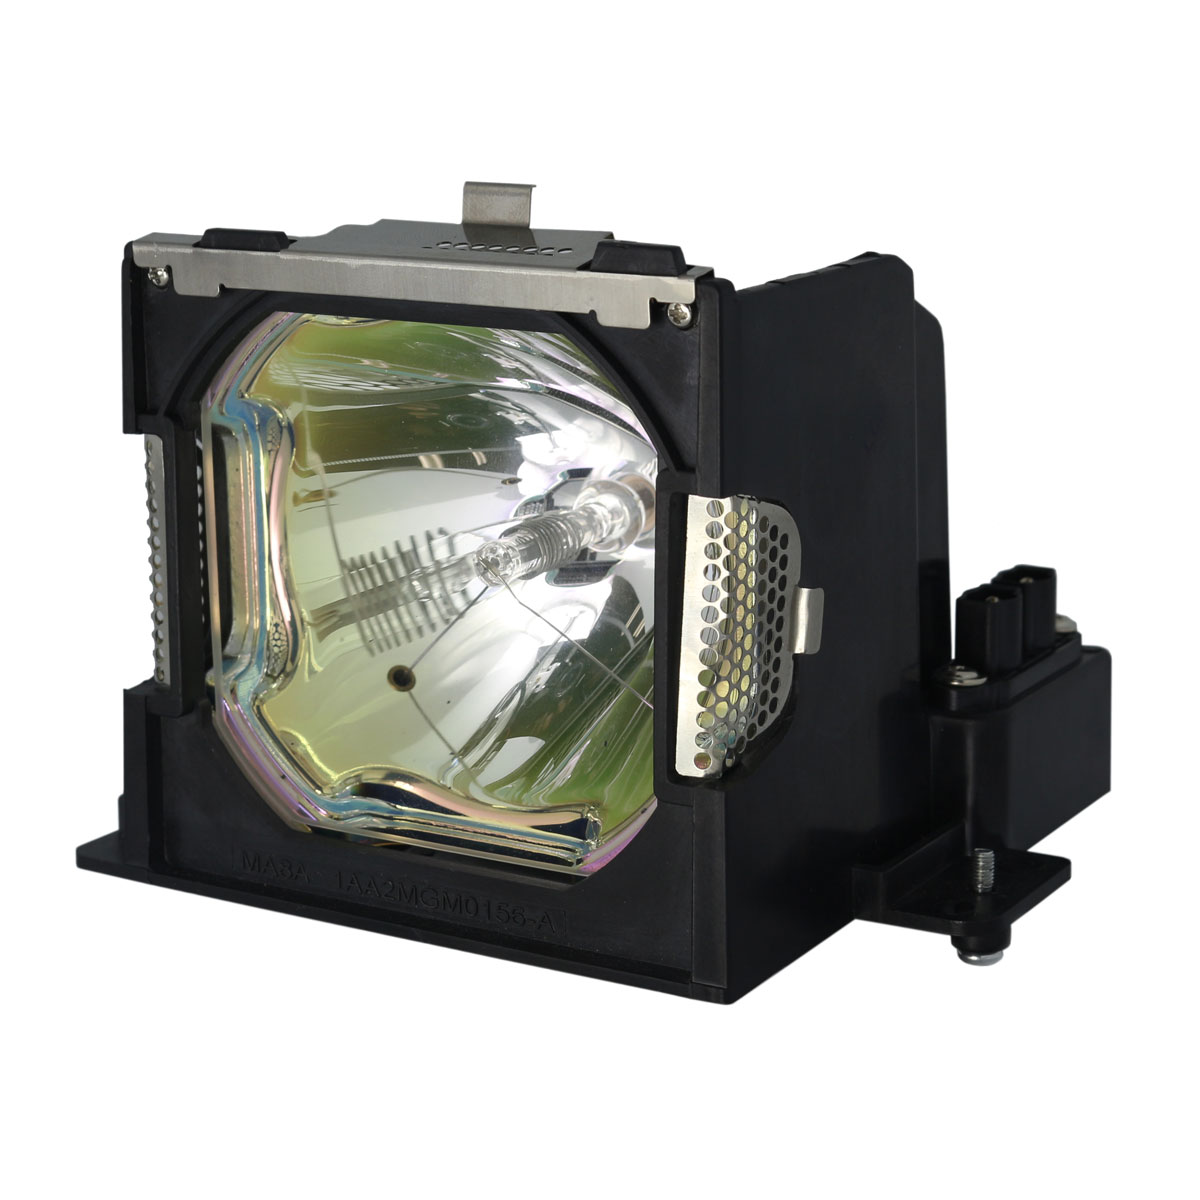 Original Philips Projector Lamp Replacement for Eiki LC-X985 (Bulb Only) - image 5 de 5